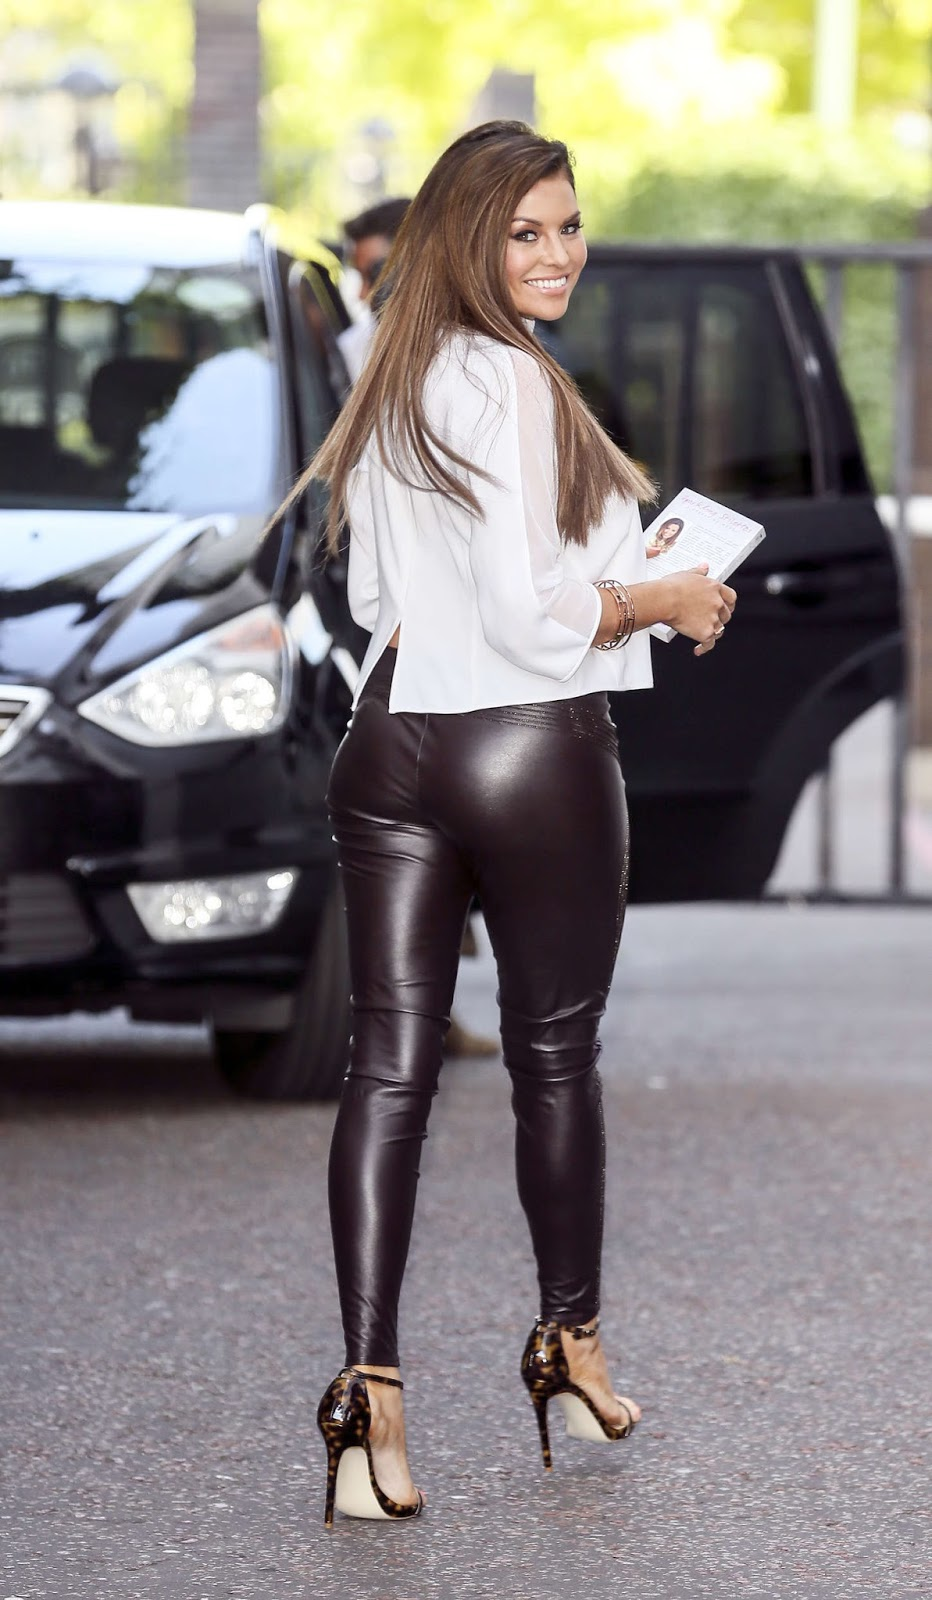 Girl in leather pants porn - New porno